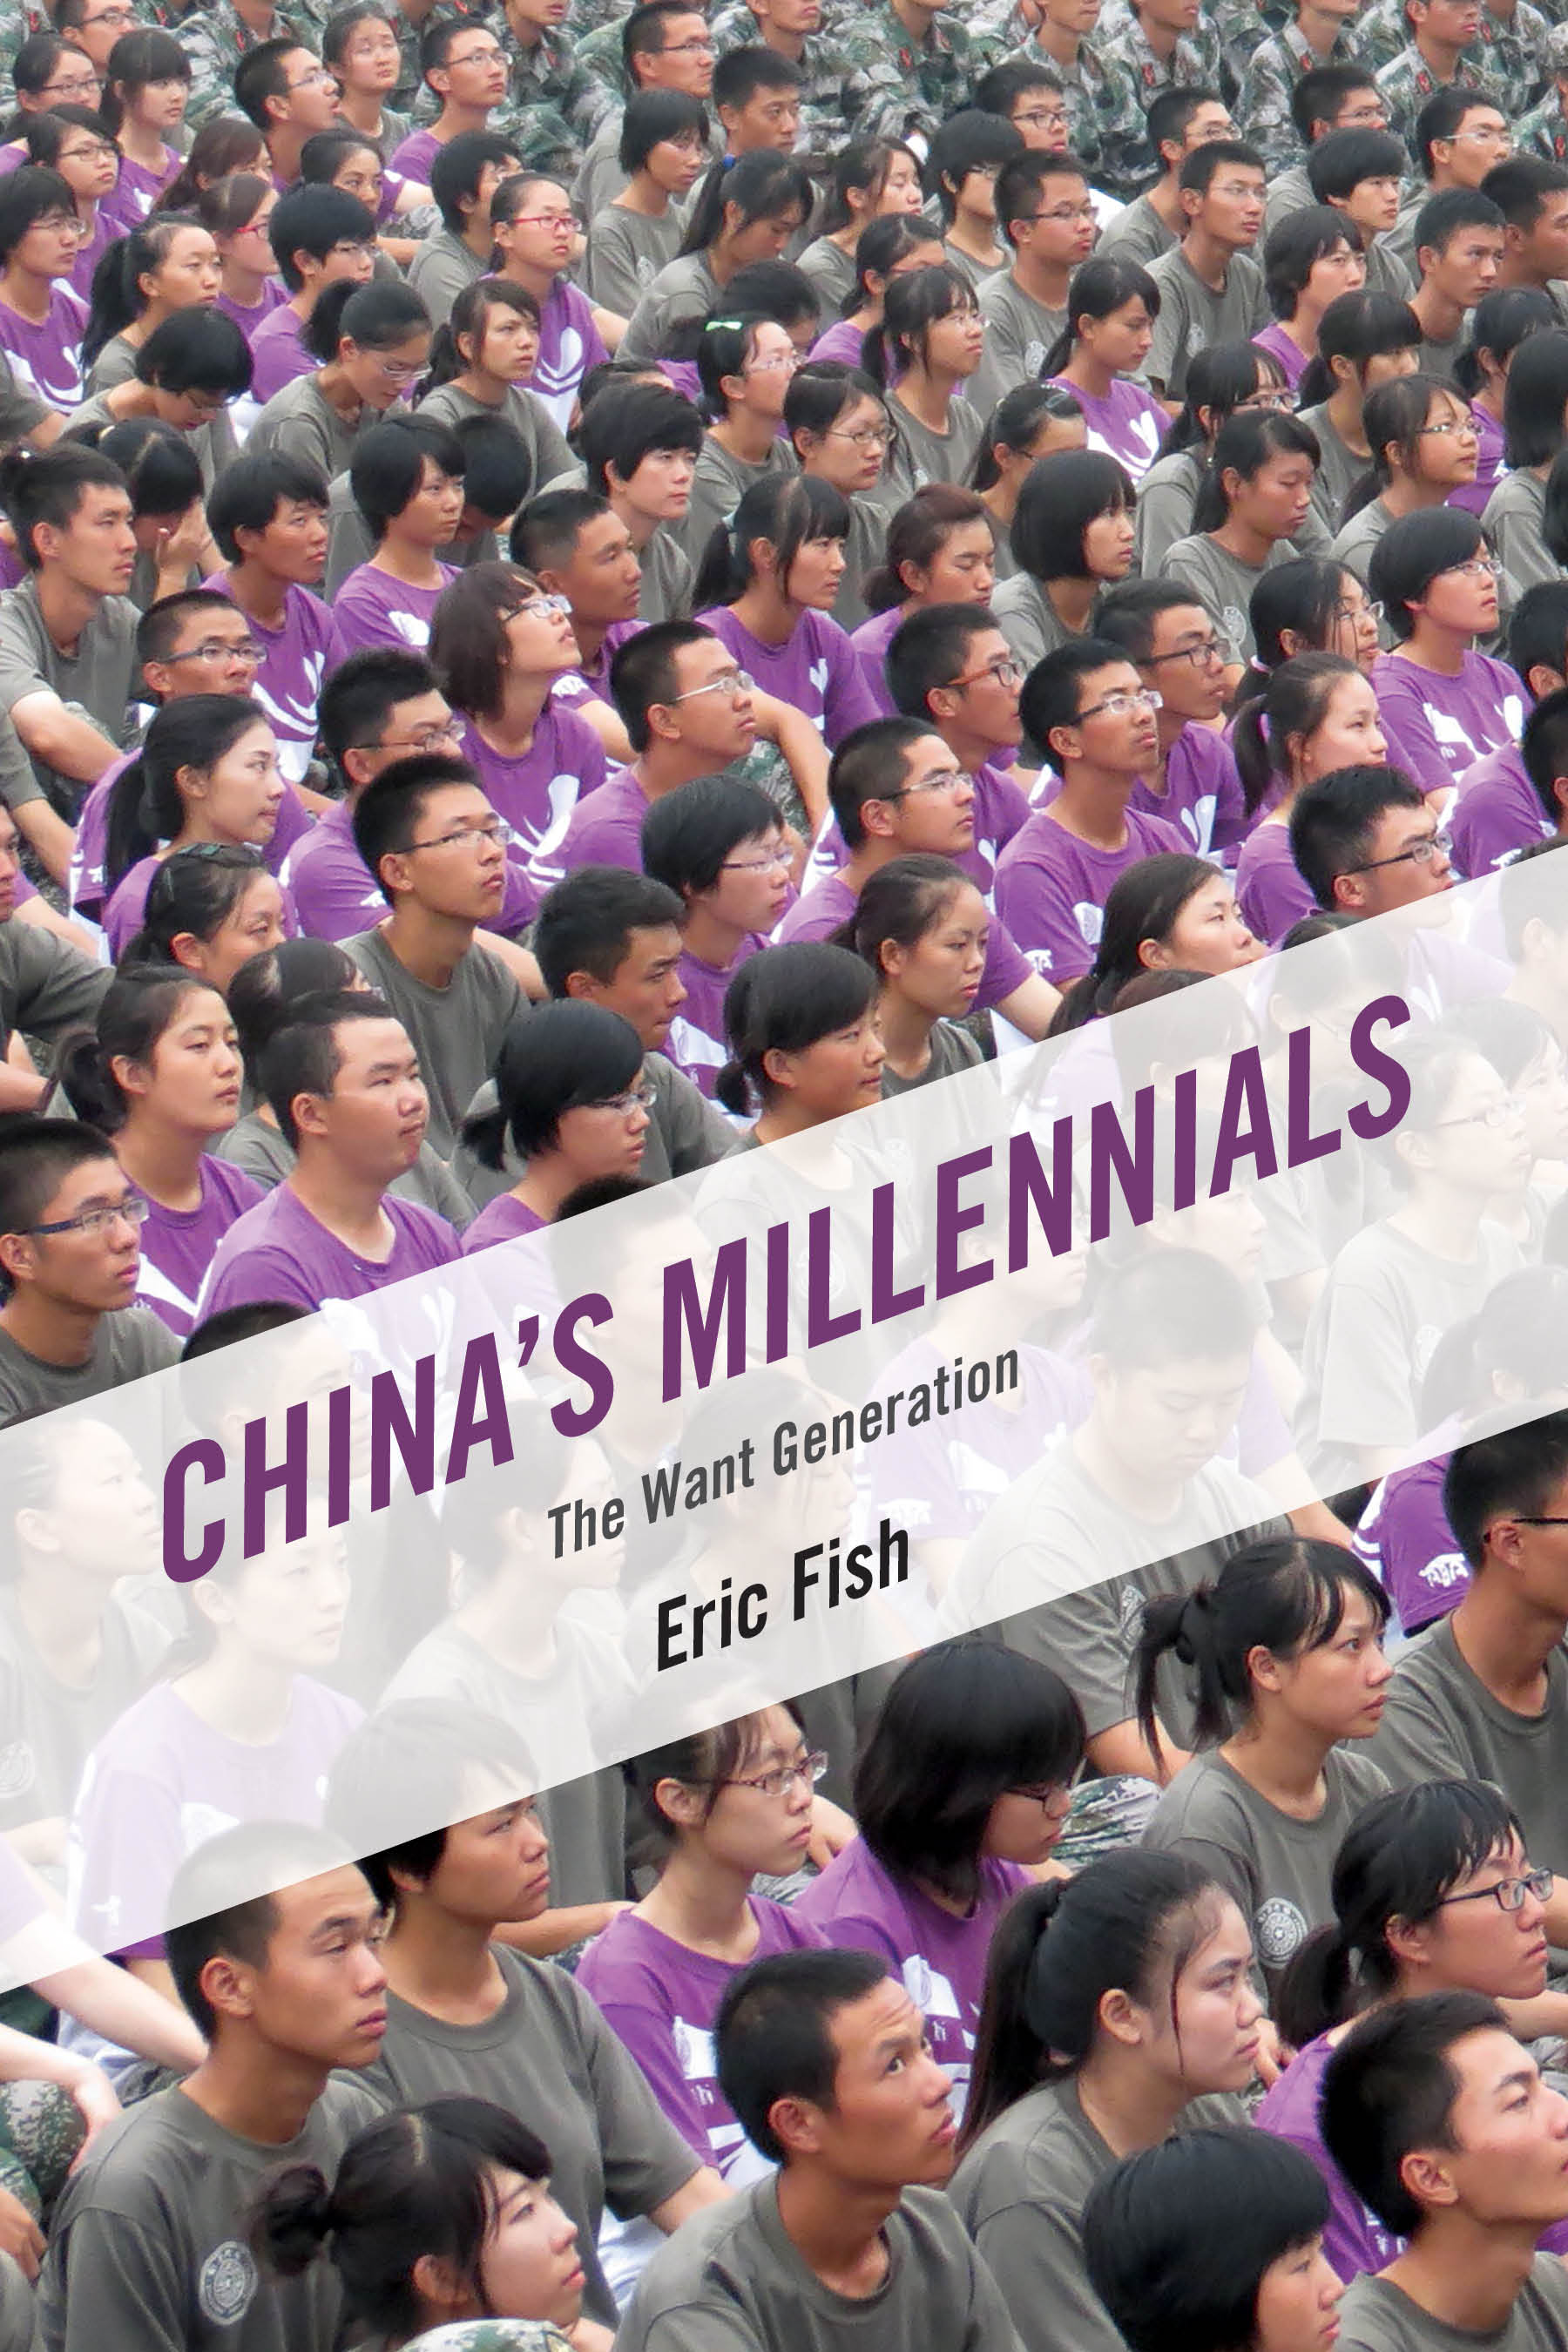 CDT Bookshelf: Eric Fish on China's Millennials